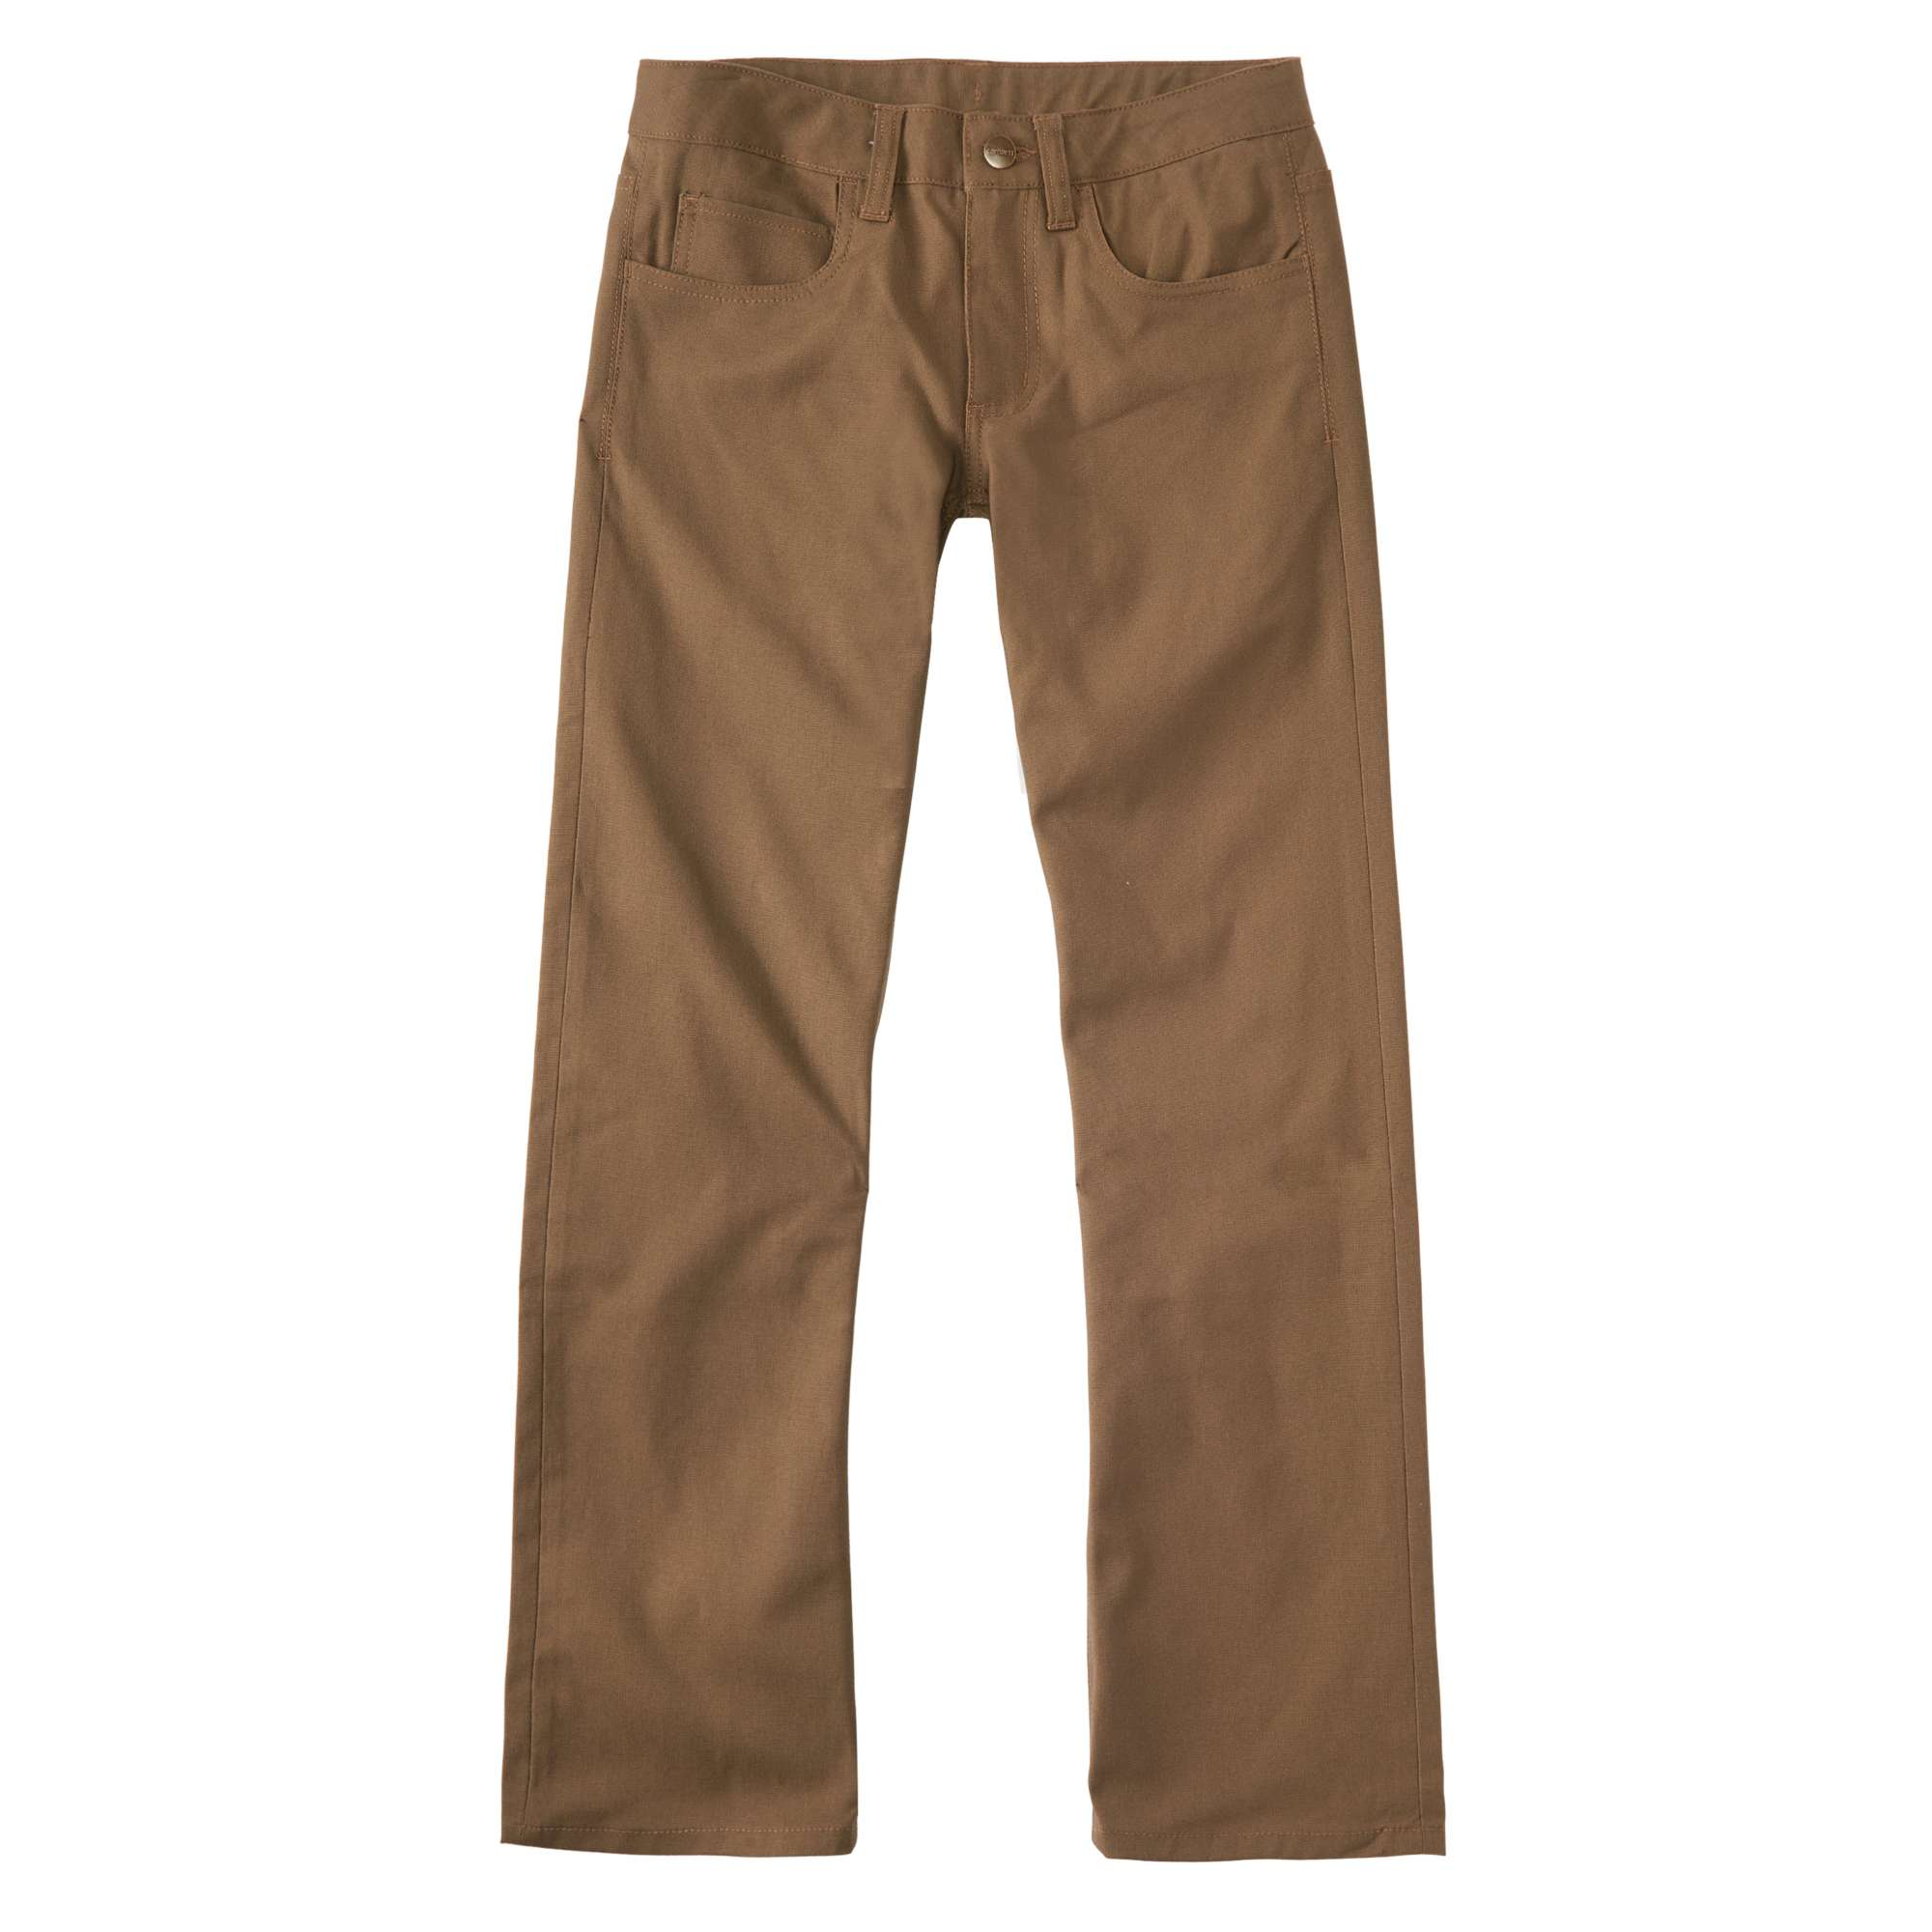 Carhartt Canvas 5-Pocket Pant